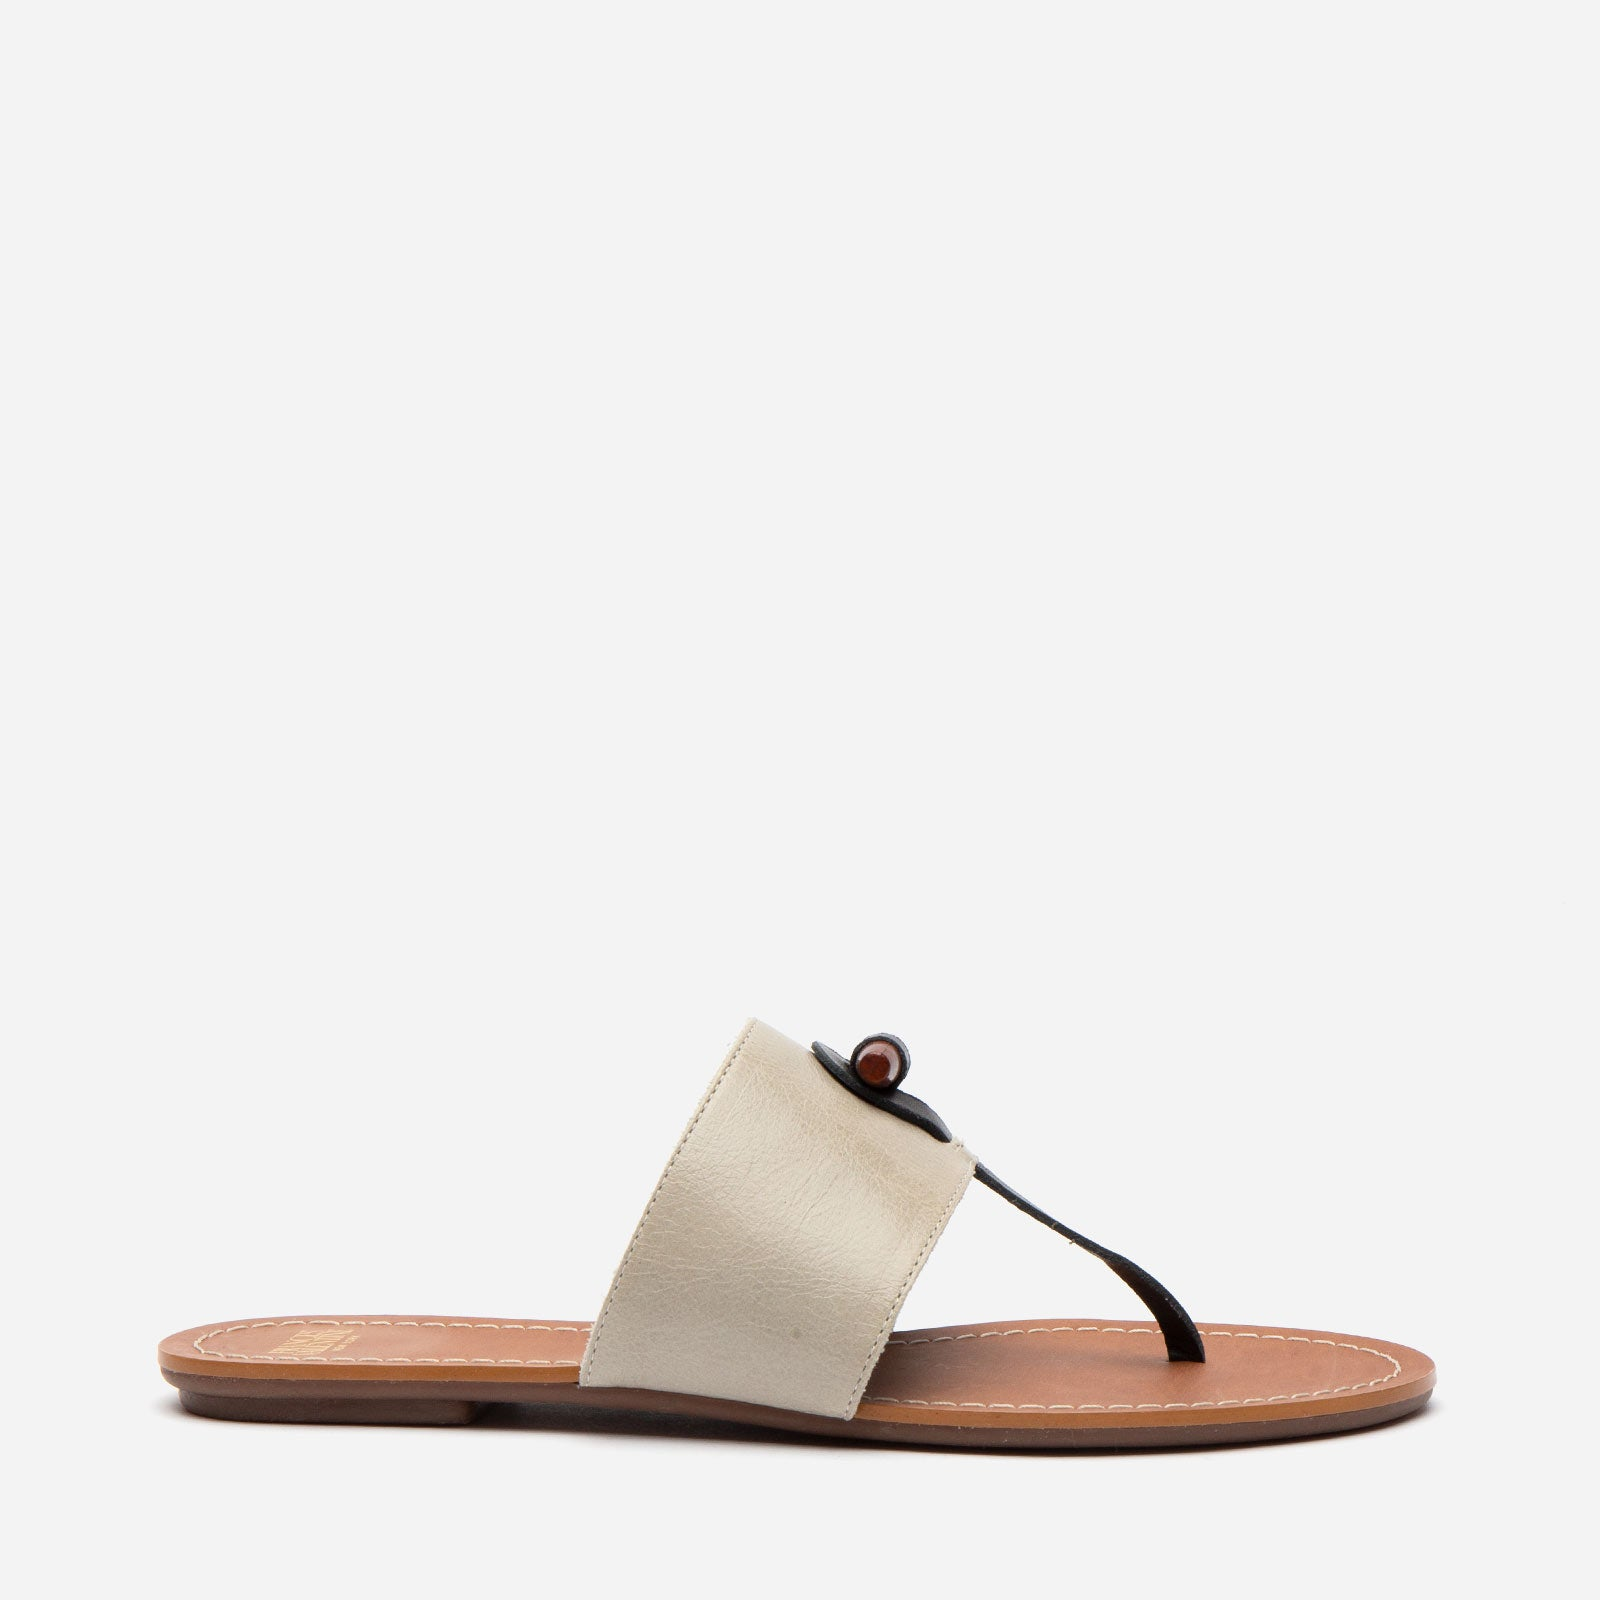 Toggle Slide Naplak Leather Oyster Black